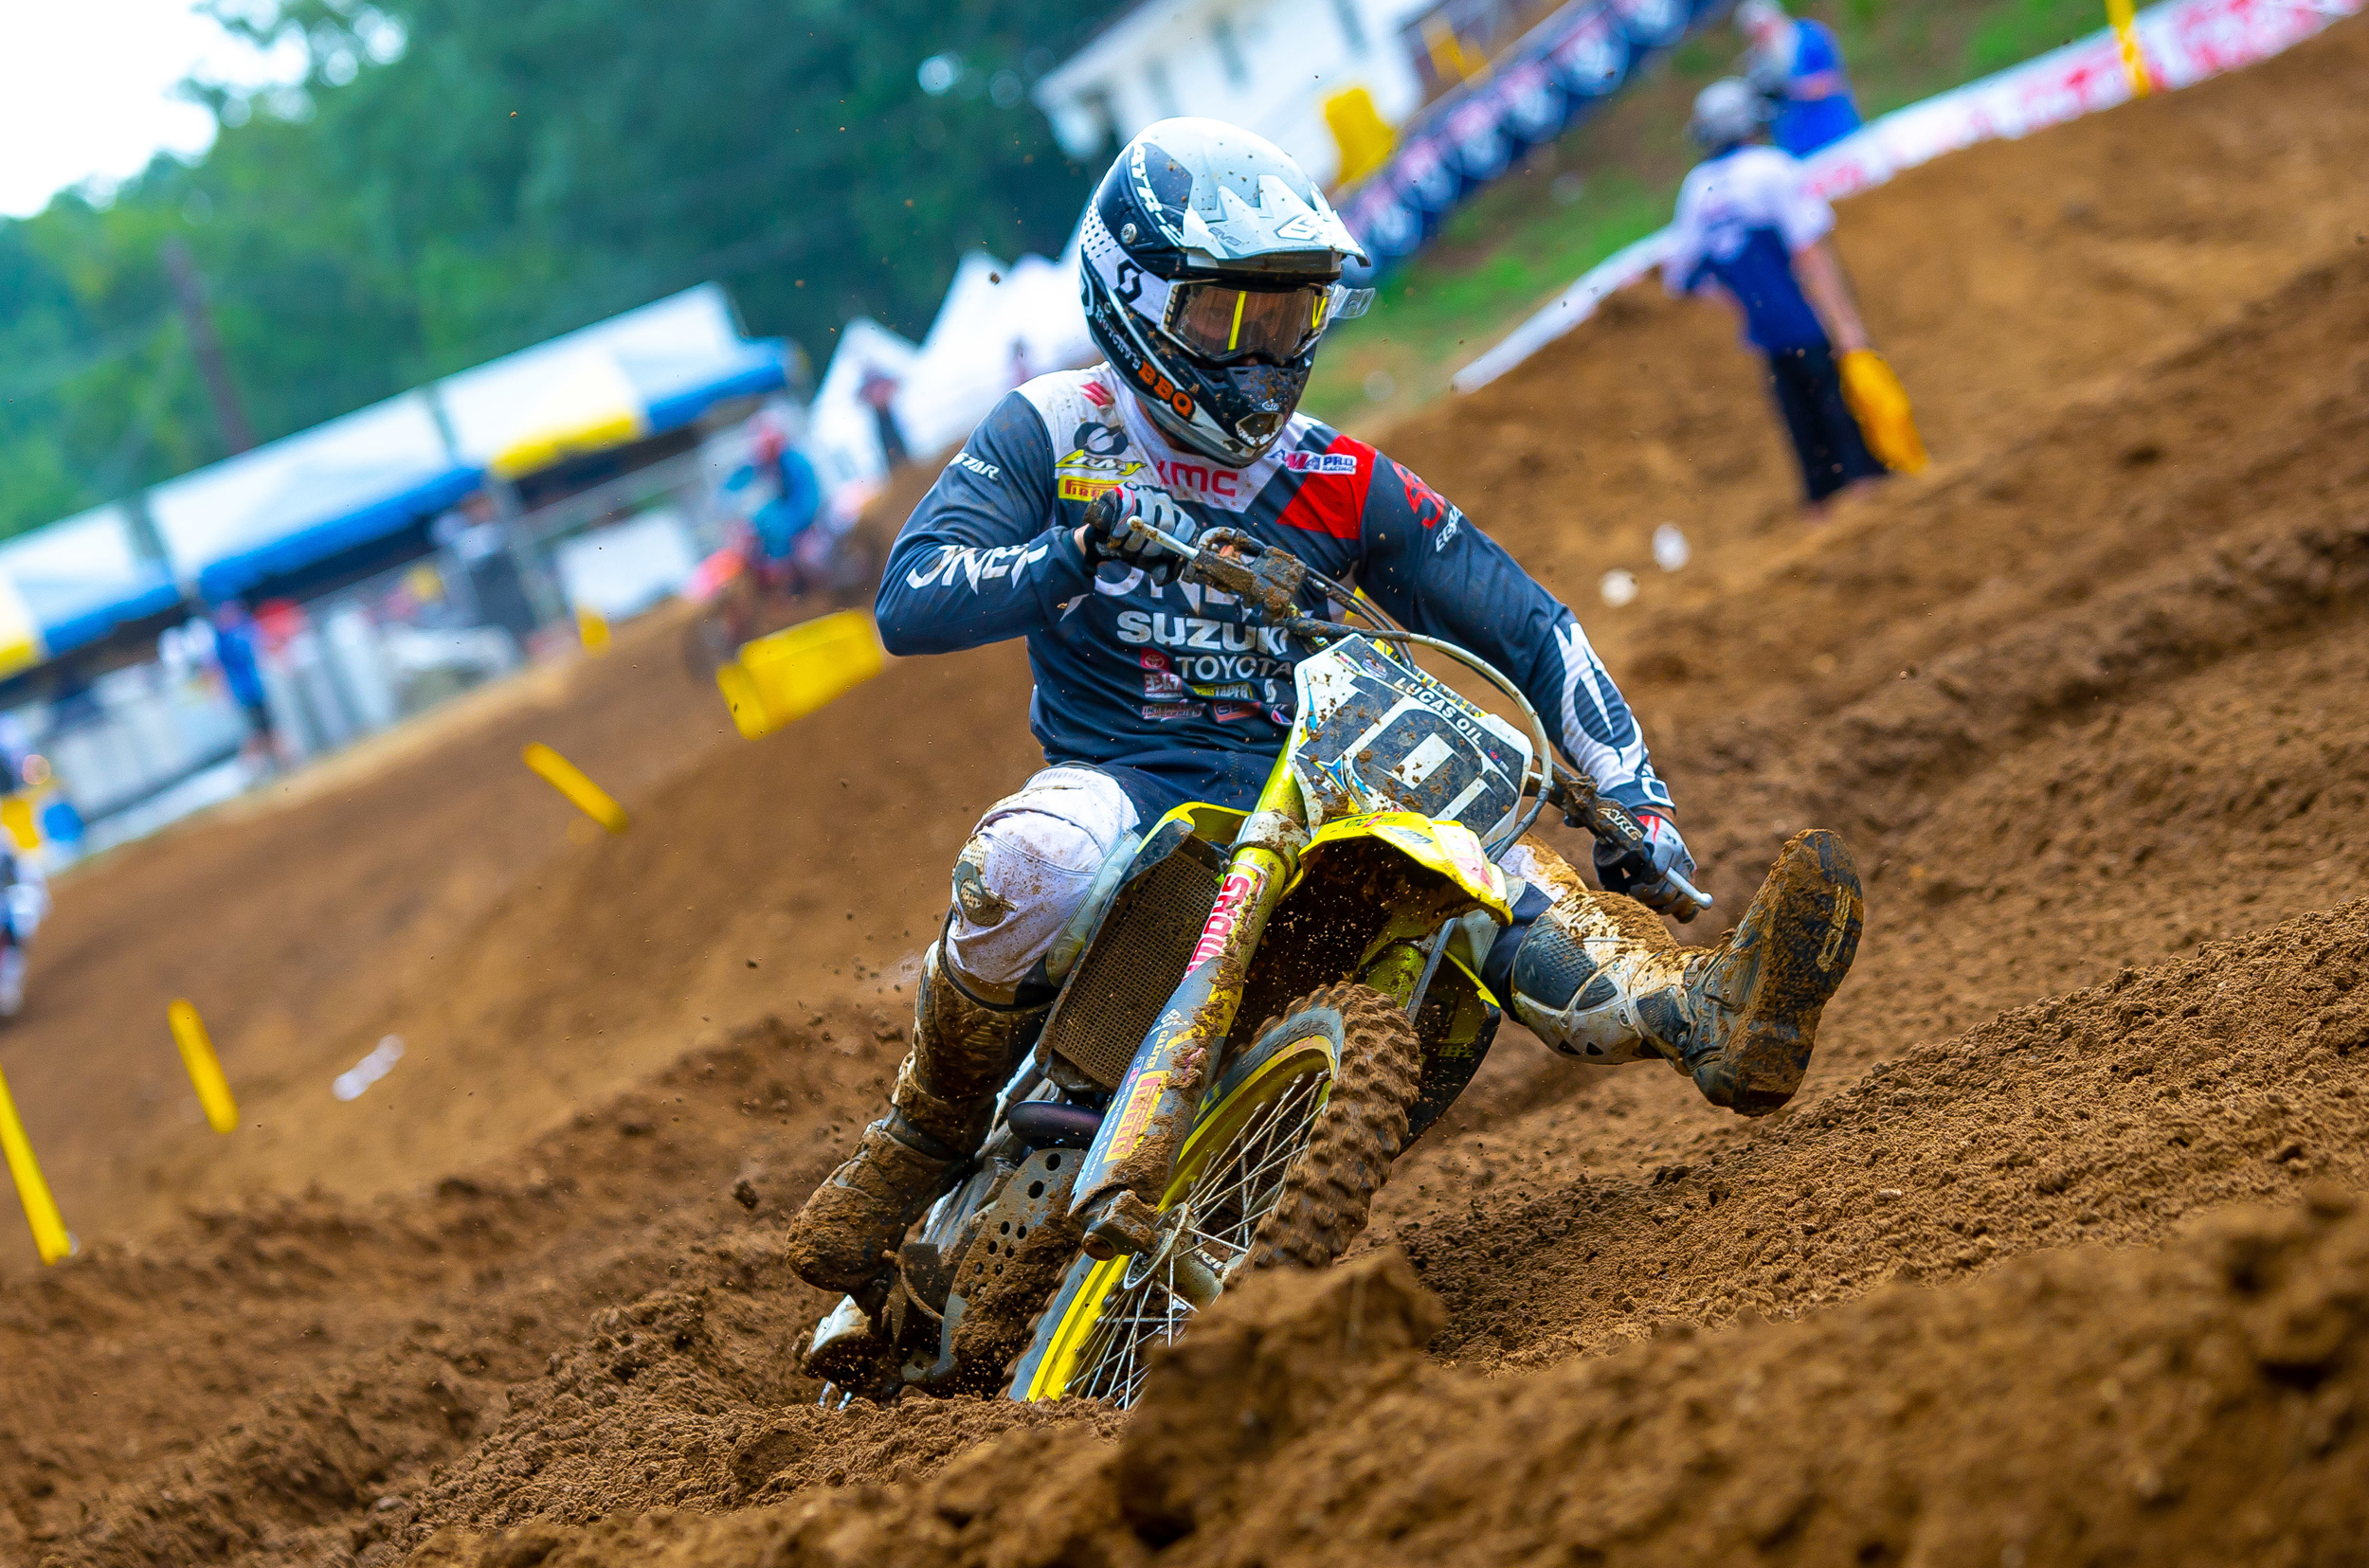 Fredrik Noren (#101) turns through the rutted track on his RM-Z450 and moves up in the overall points standings